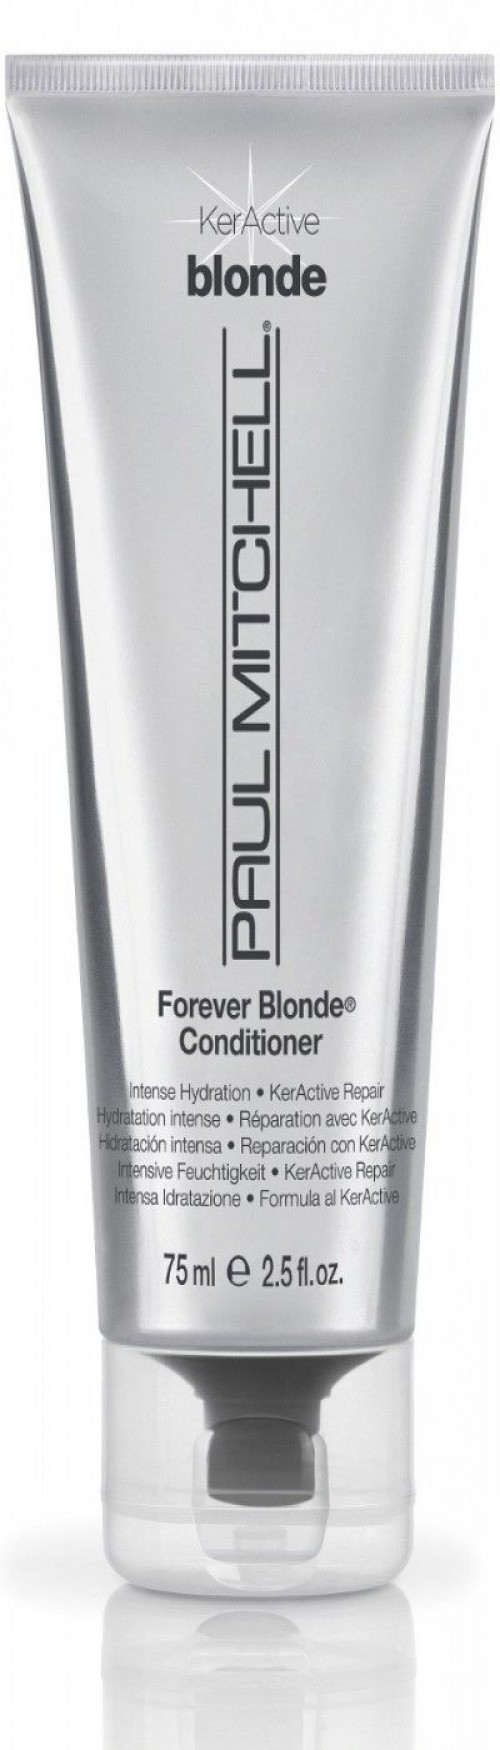 FOREVER BLONDE® CONDITIONER